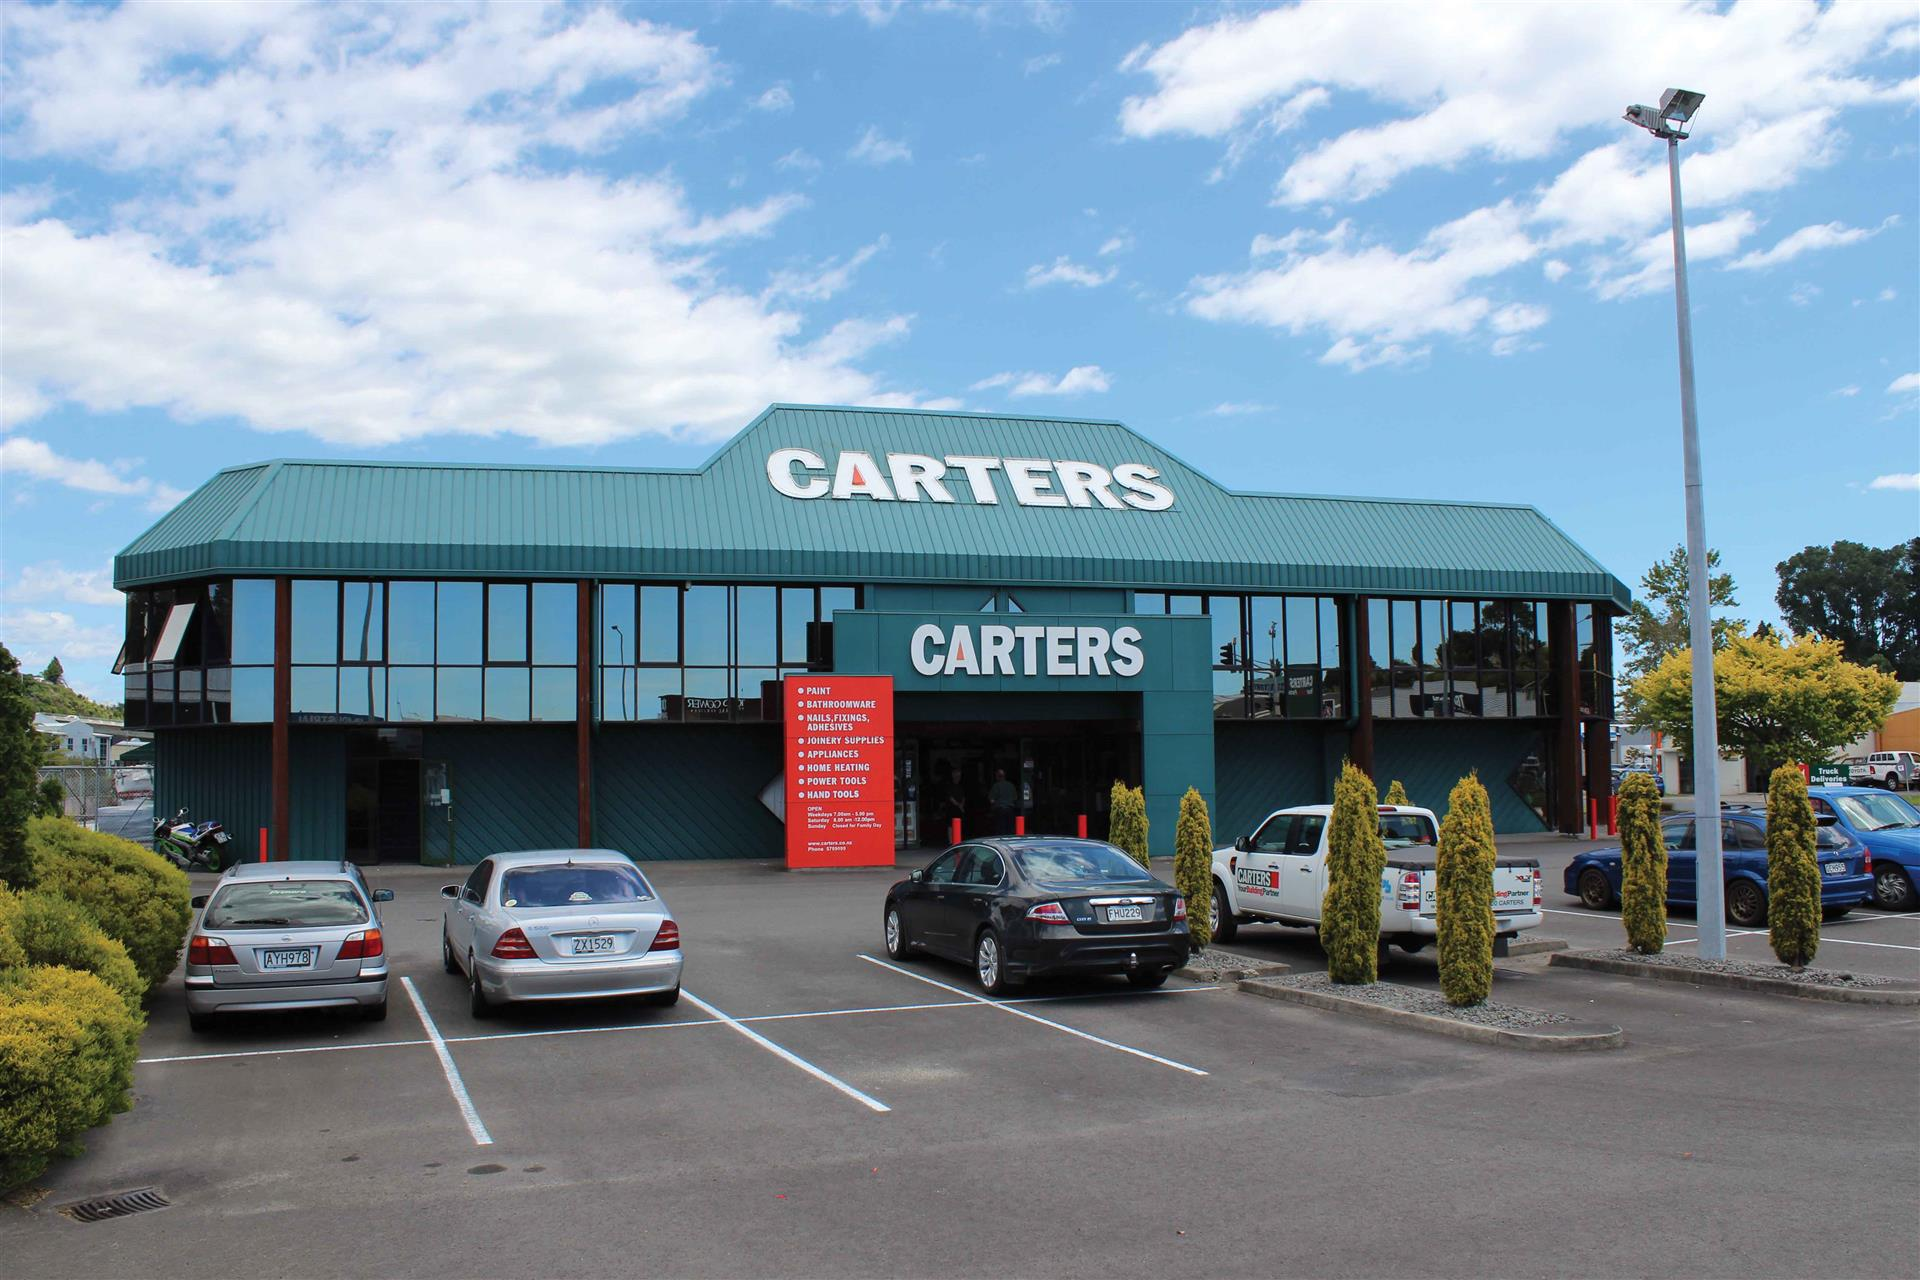 Photo of Carters, 14 Birch Avenue, Tauranga